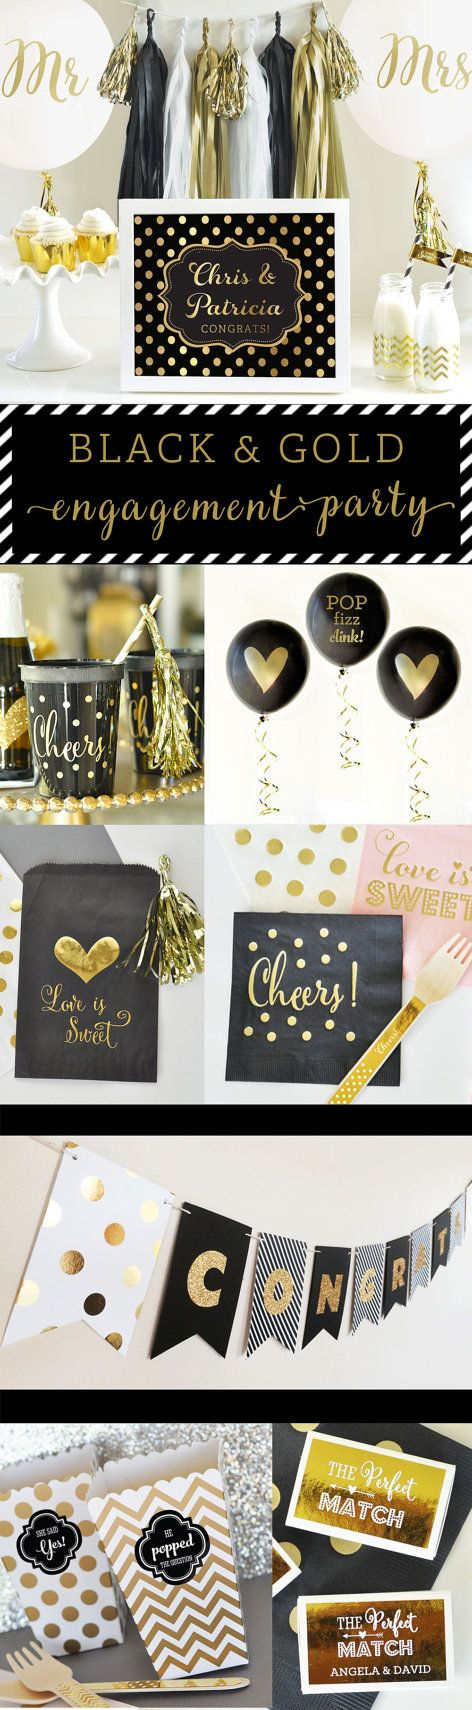 Loving these black & gold engagement party pretties #engagementpartyideasdecorations